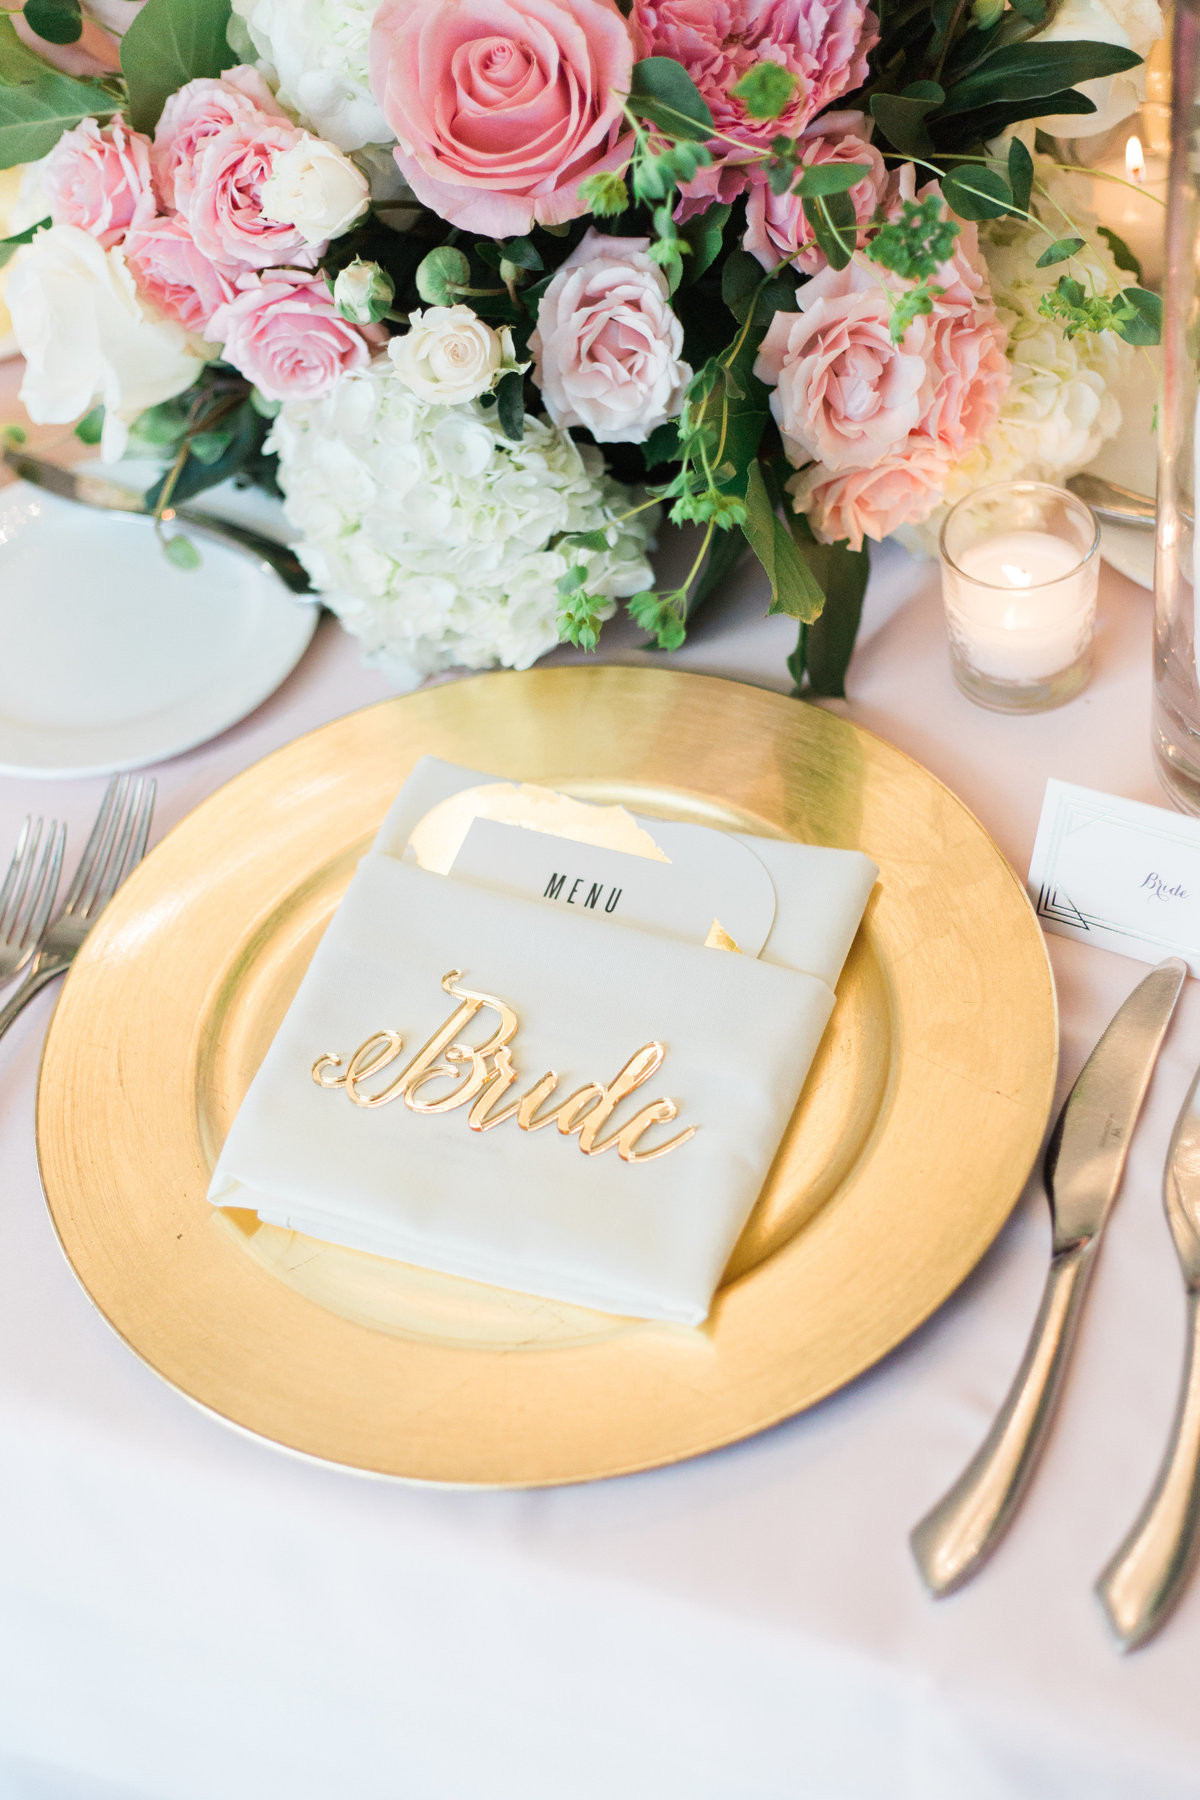 Bride plate arrangement